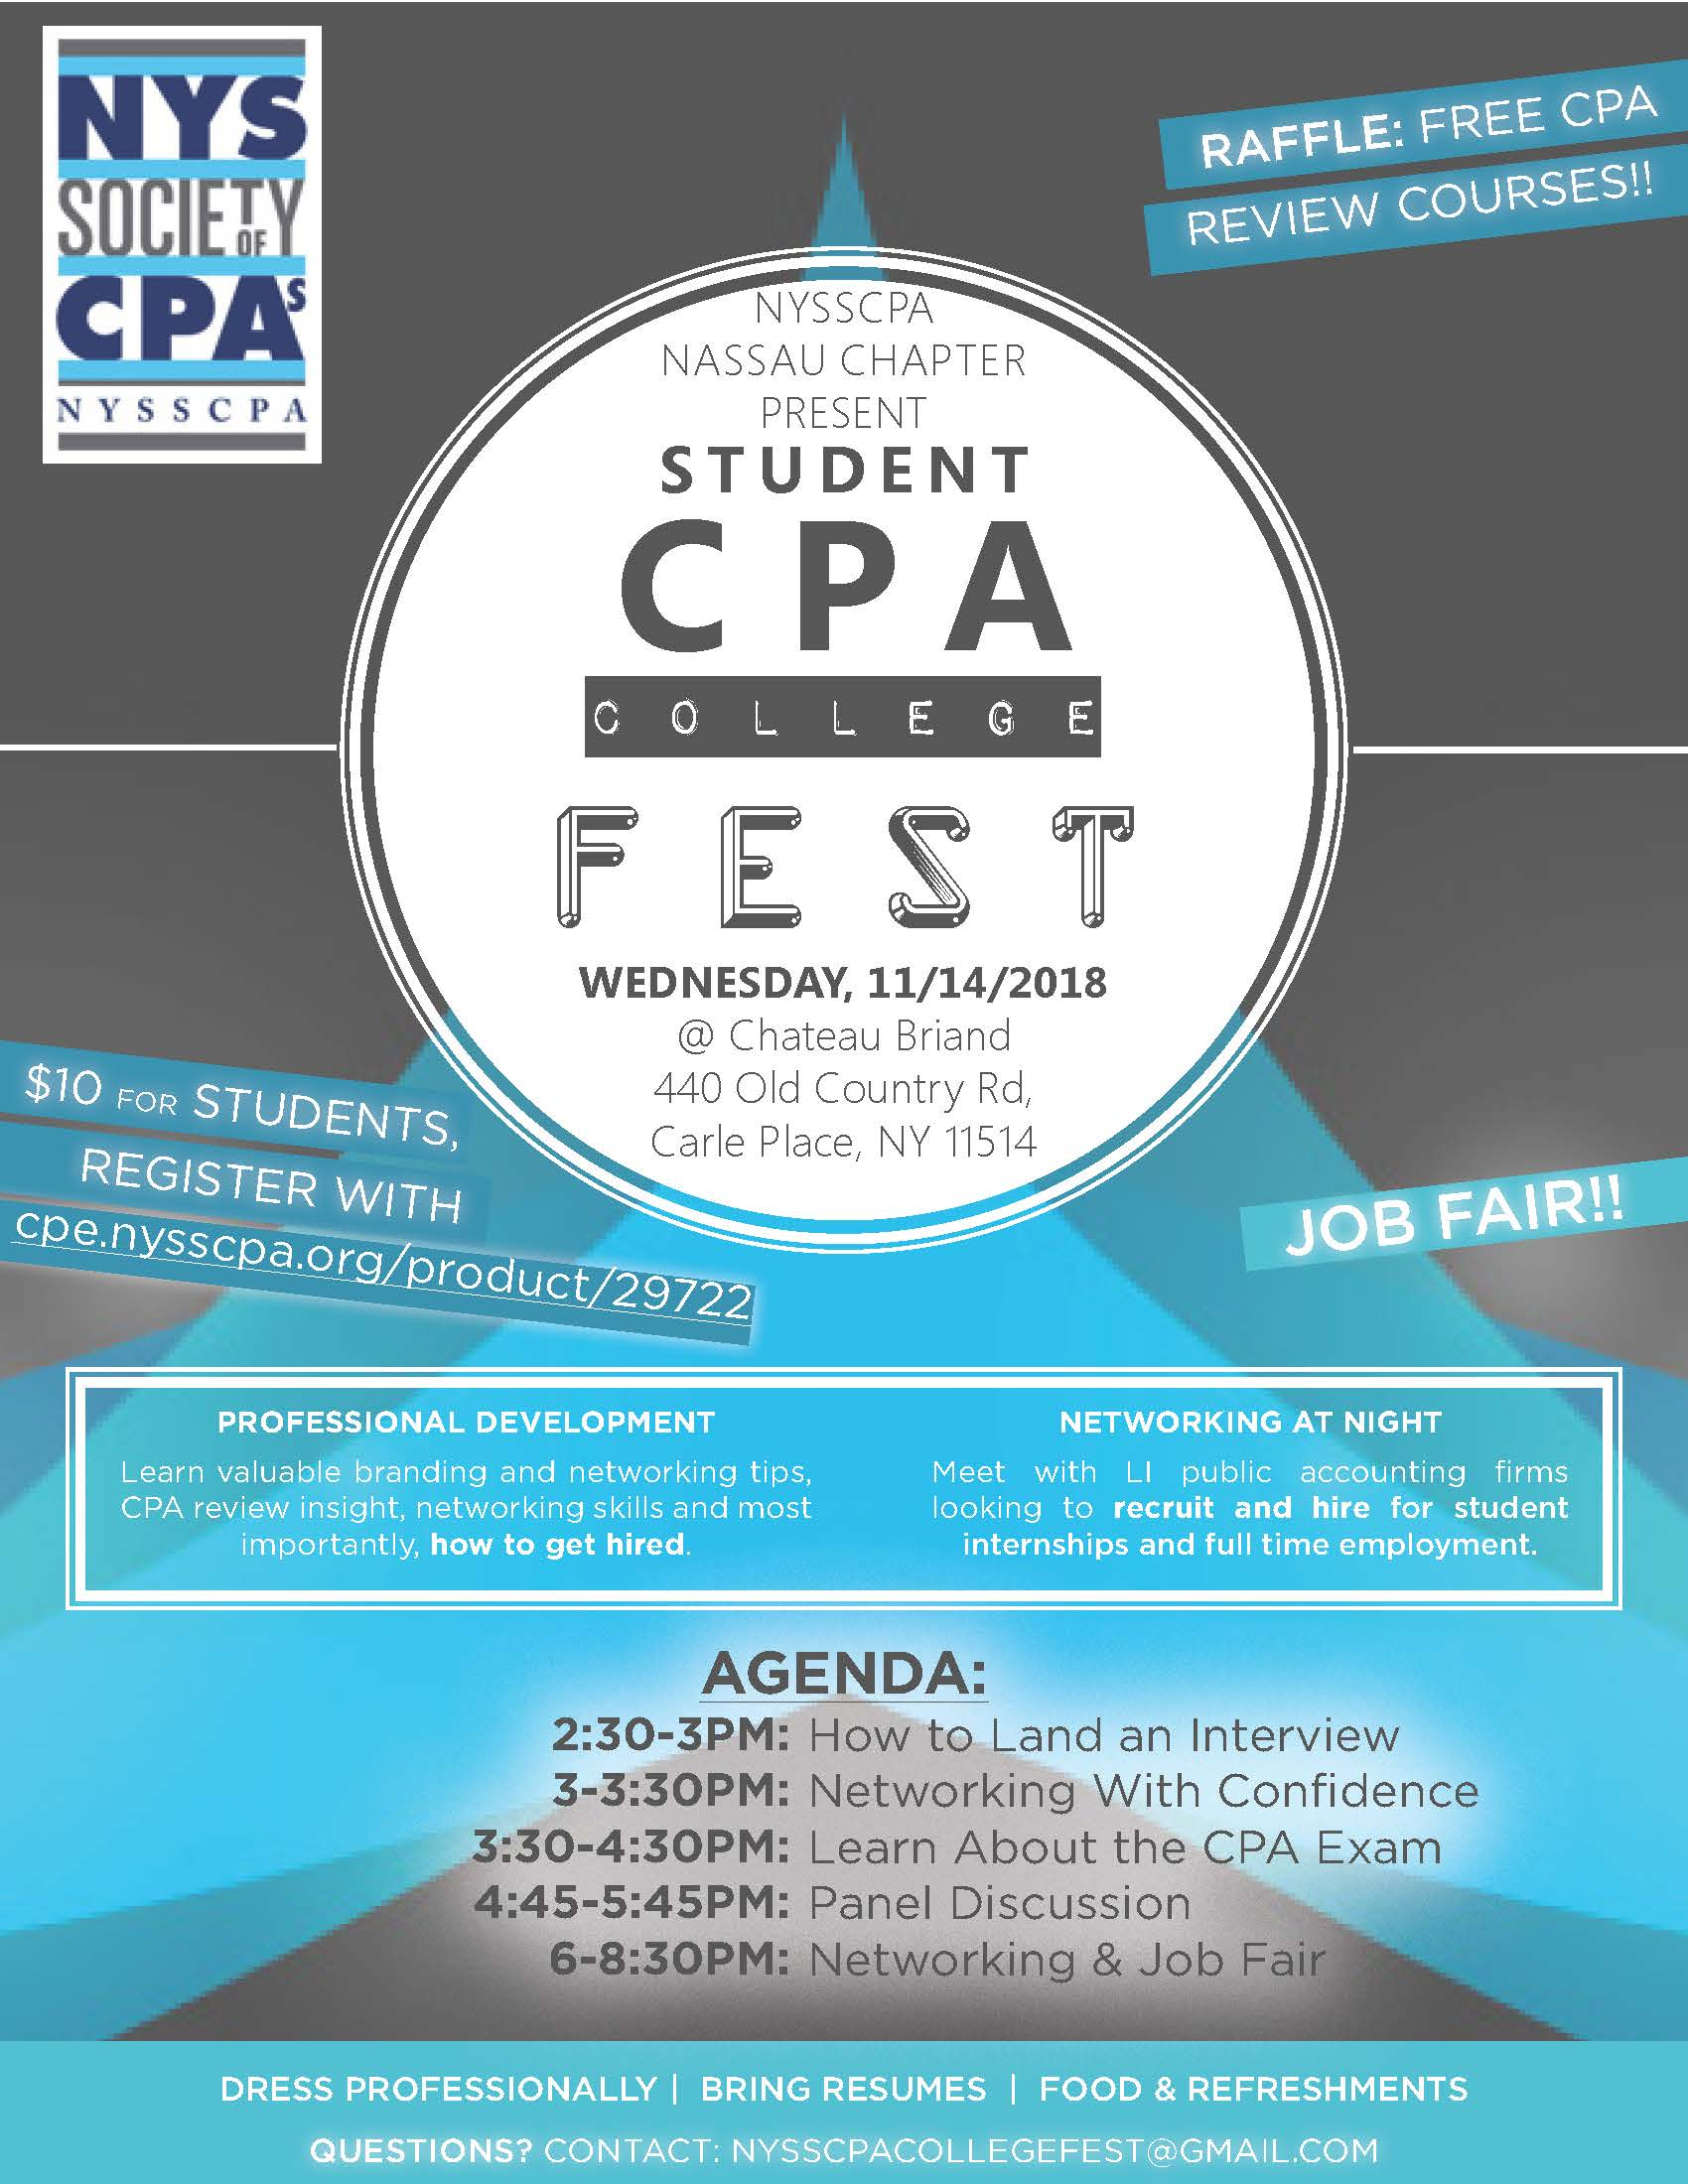 NYSSCPA - Student CPA College Fest